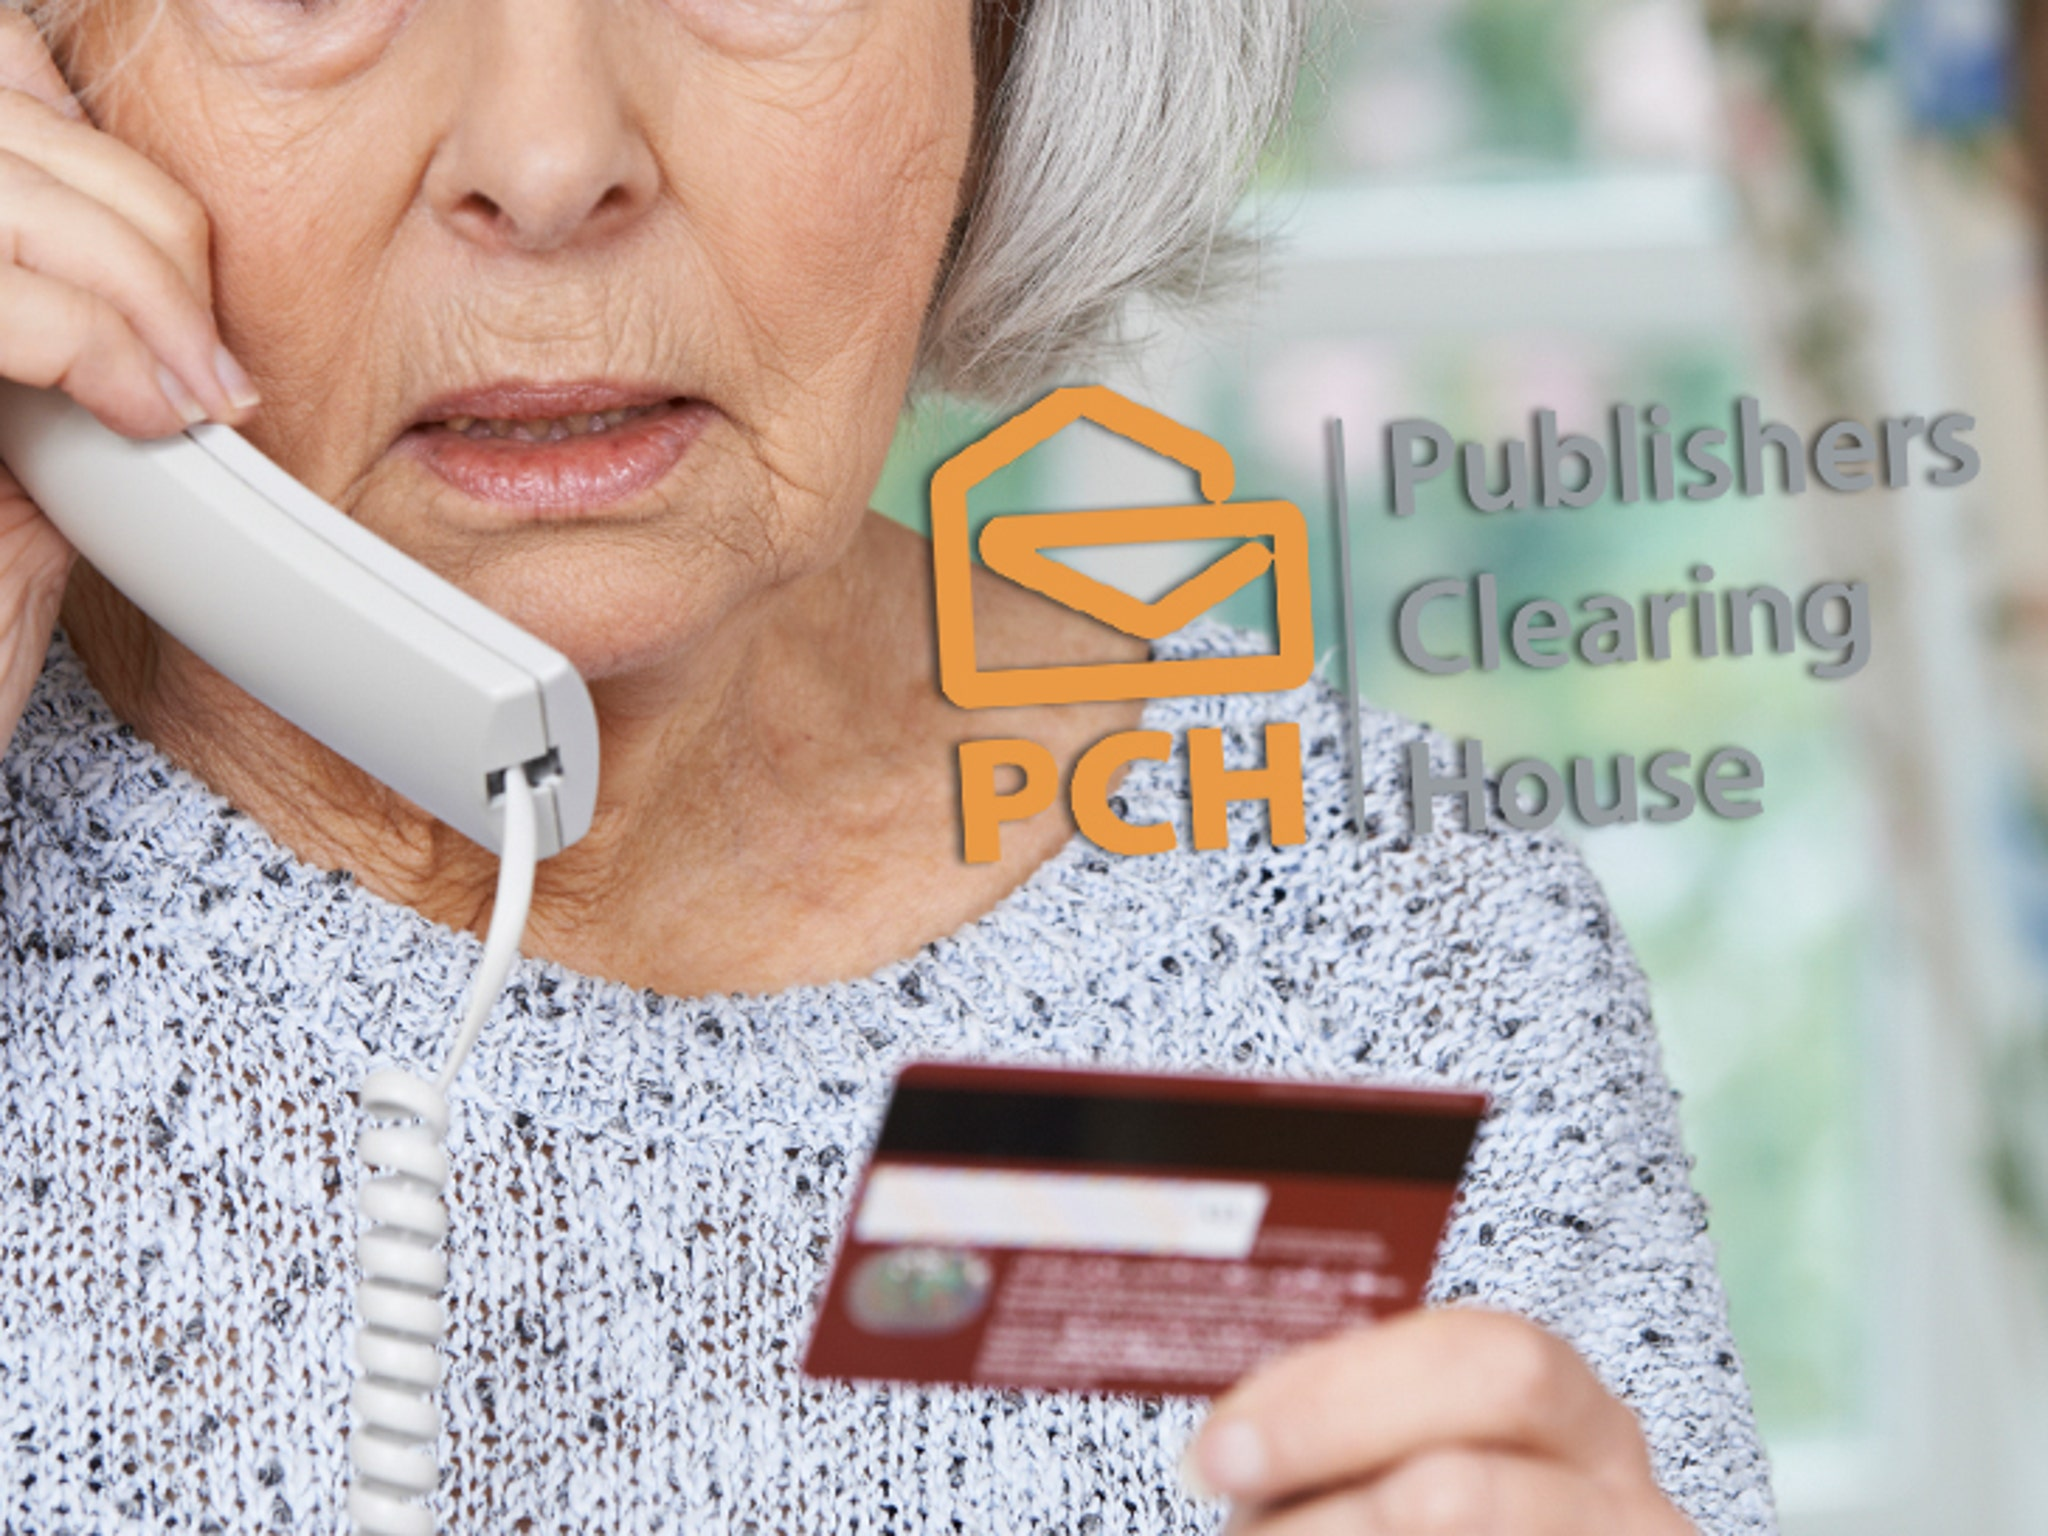 Publishers Clearing House Sued for Deceiving Elderly with Sweepstakes